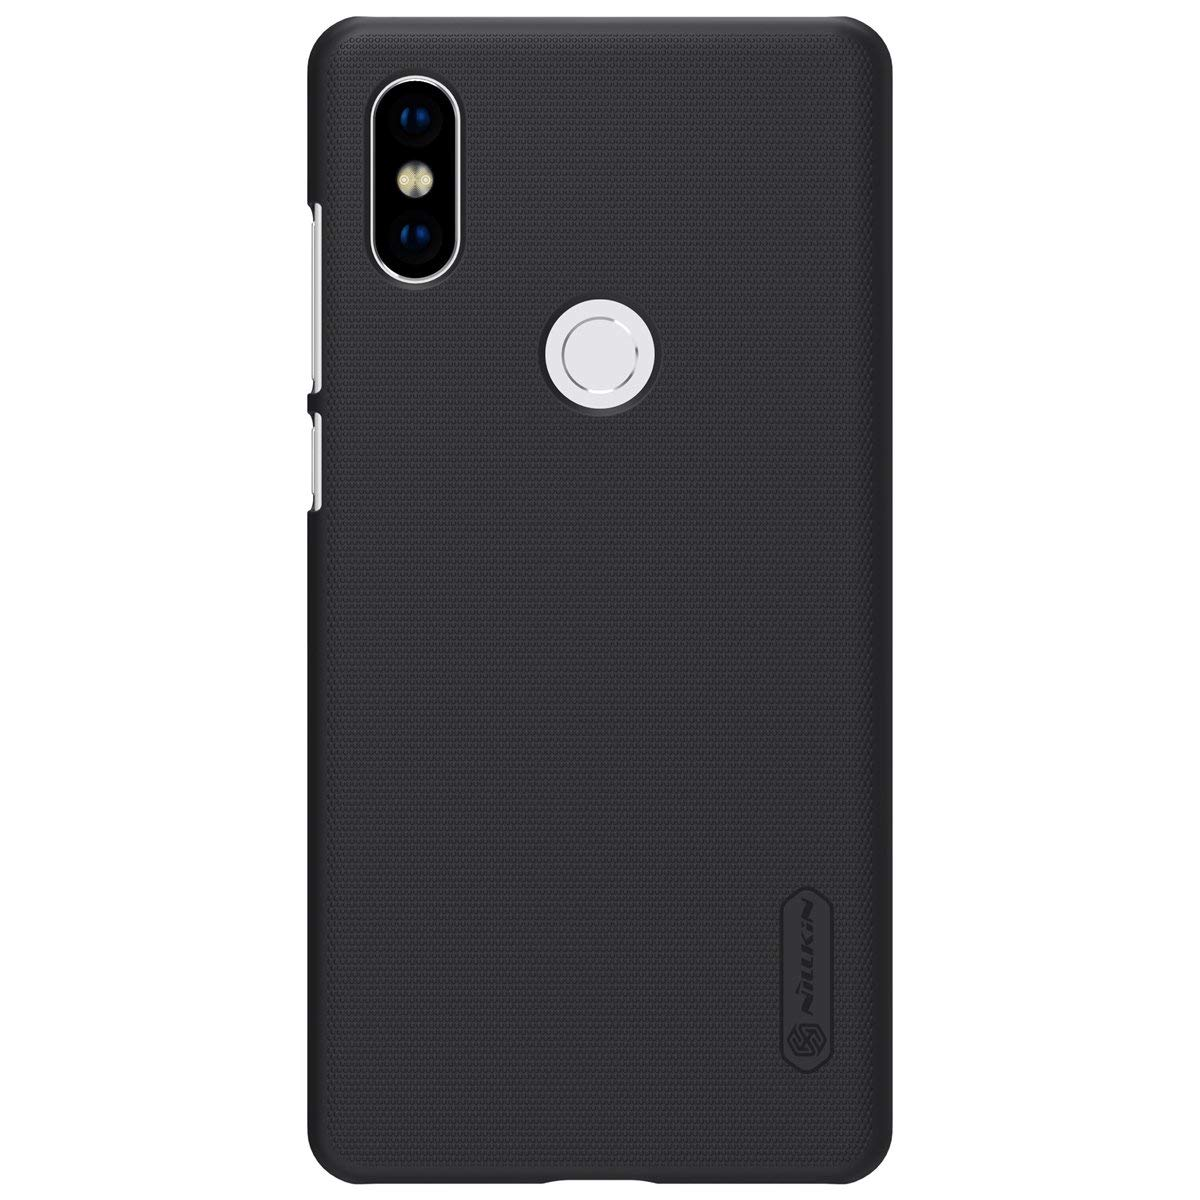 Etui Nillkin Frosted Shield do Xiaomi Mi Mix 2s